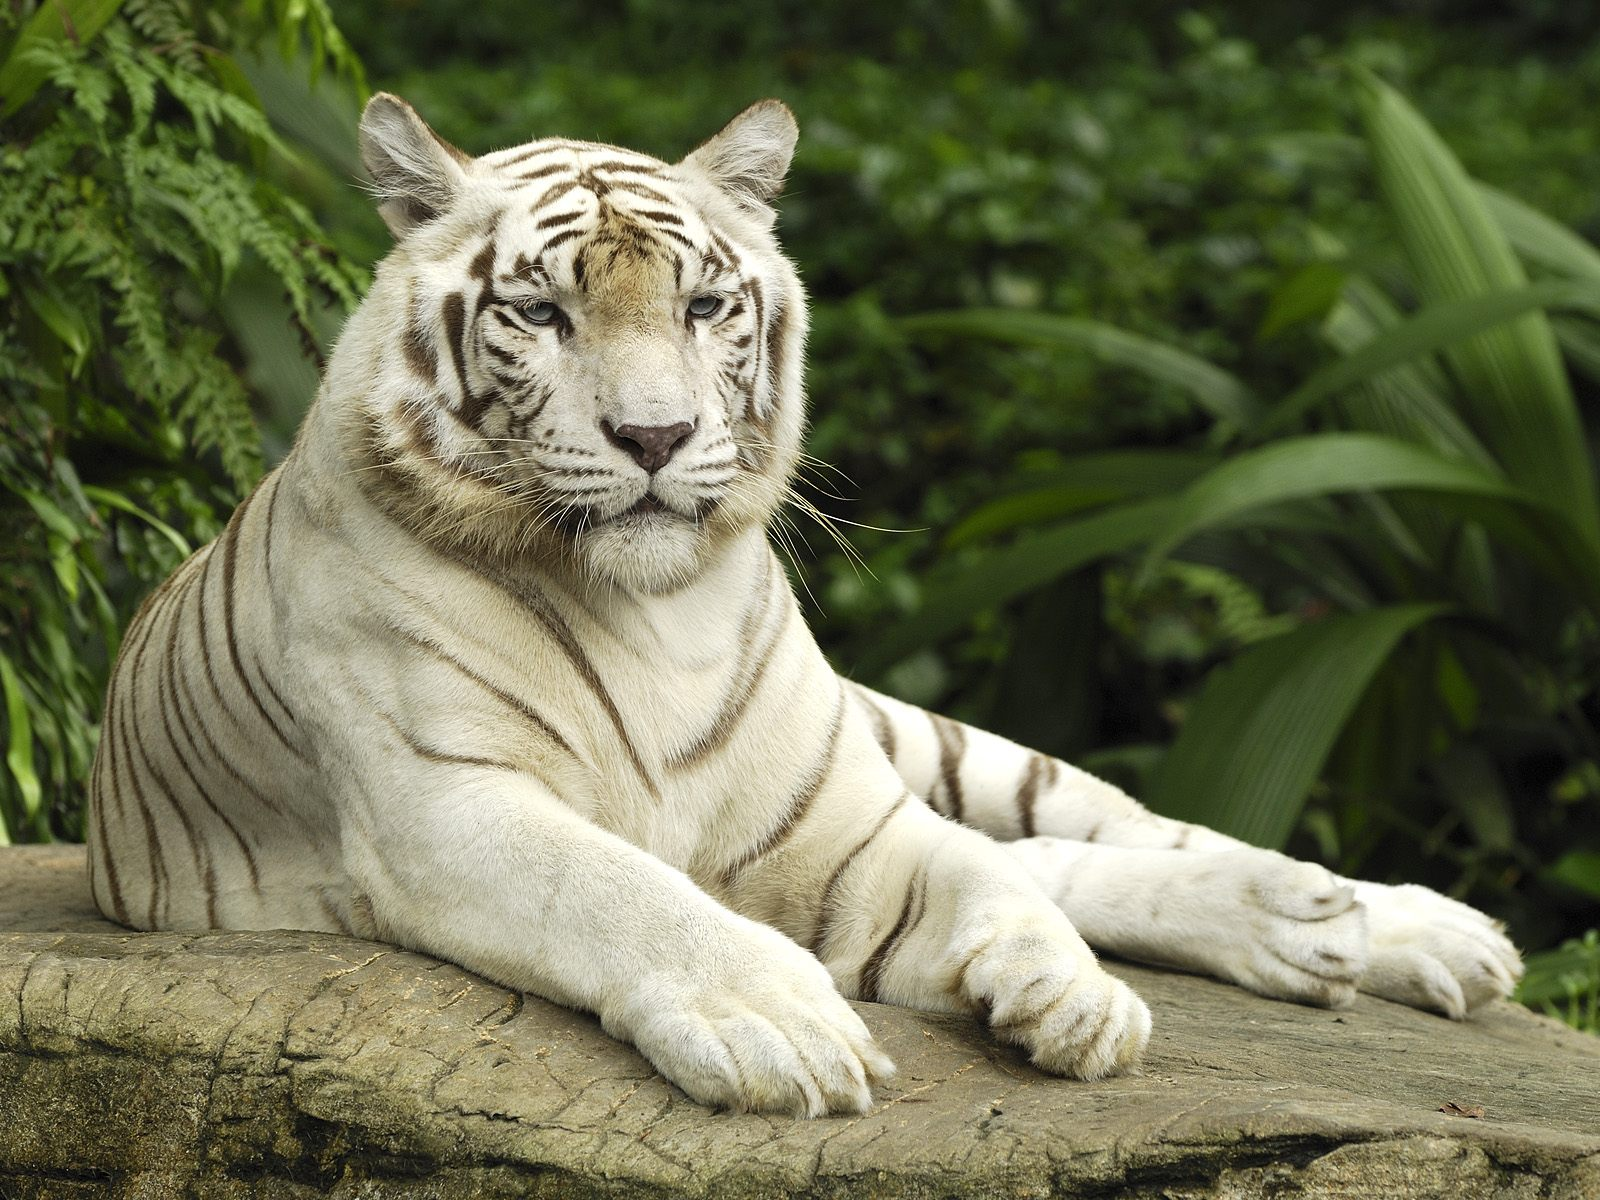 White Tiger, Singapore 323.5 Kb